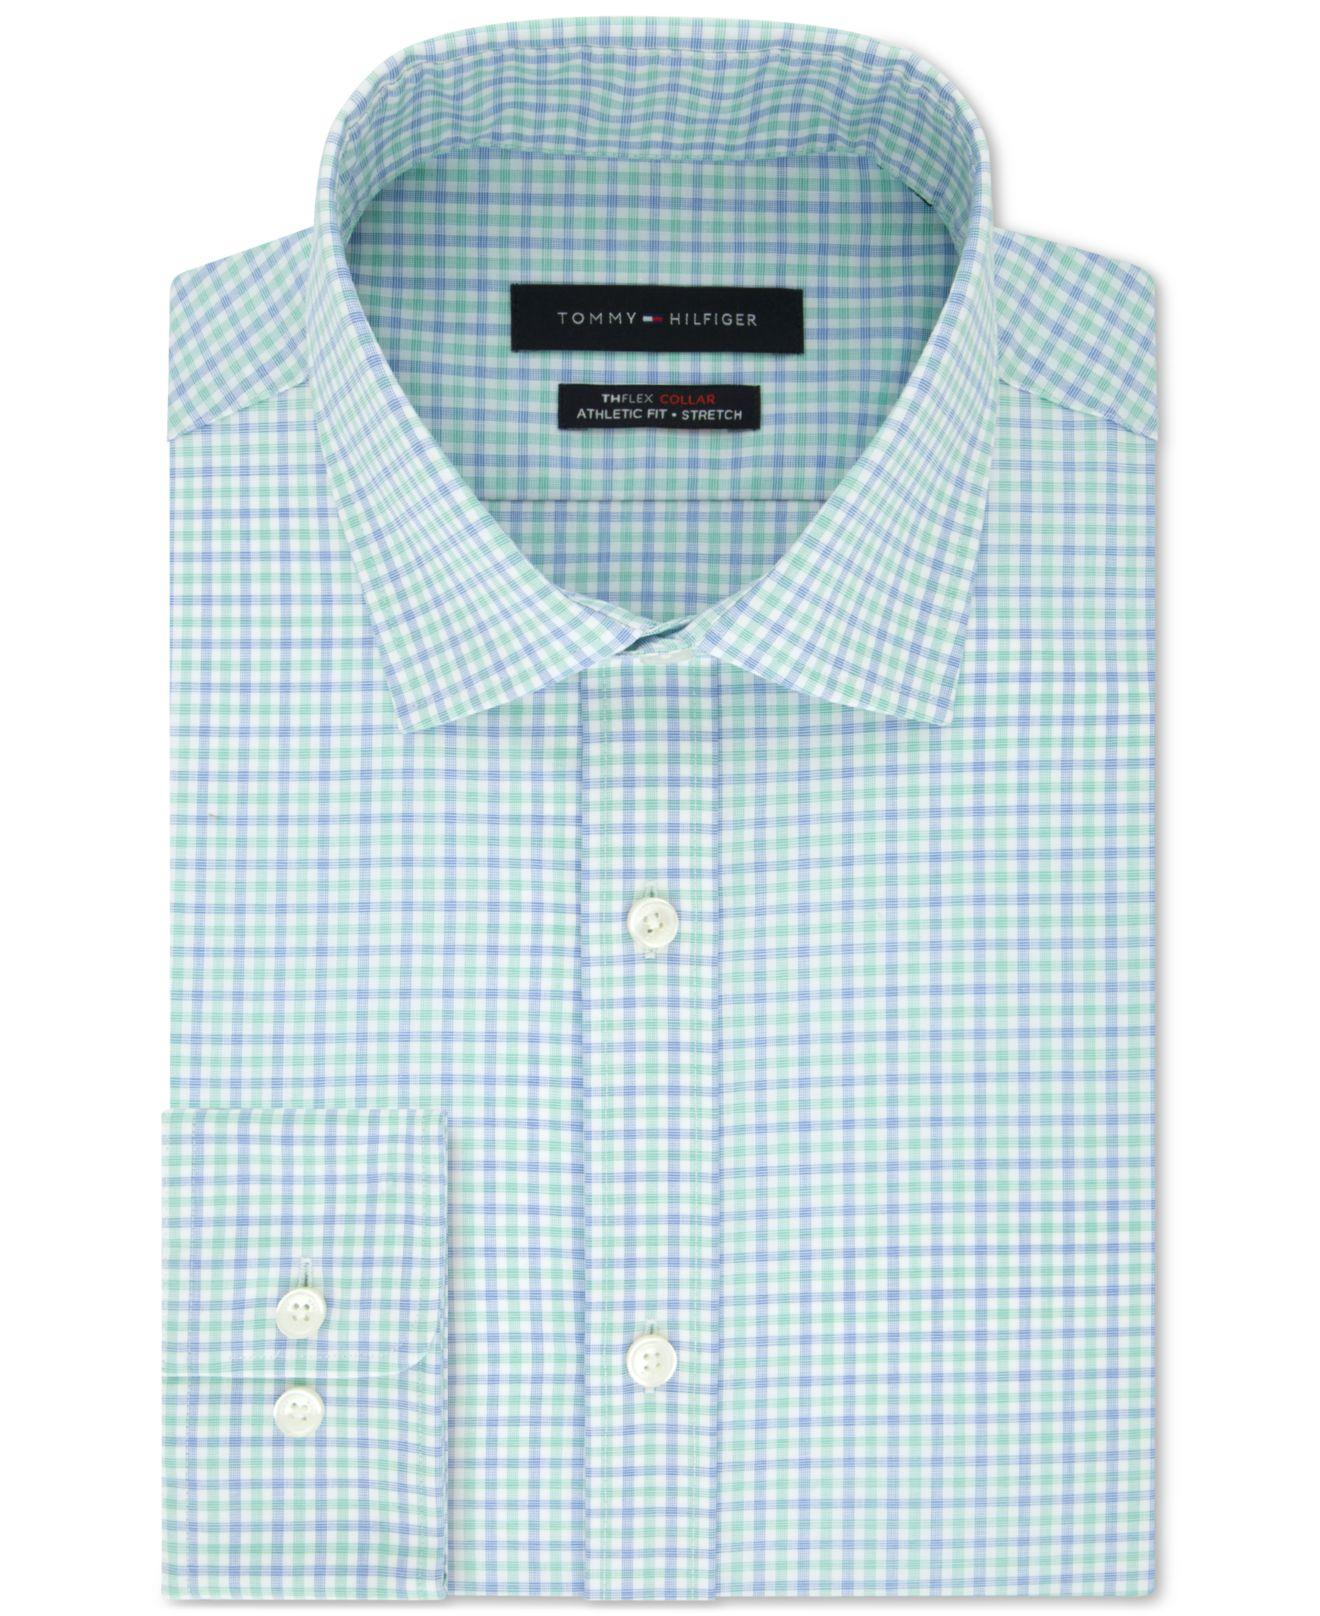 ebb7cdb0 Tommy Hilfiger - Multicolor Th Flex Fitted Non-iron Stretch Check Dress  Shirt for Men. View fullscreen